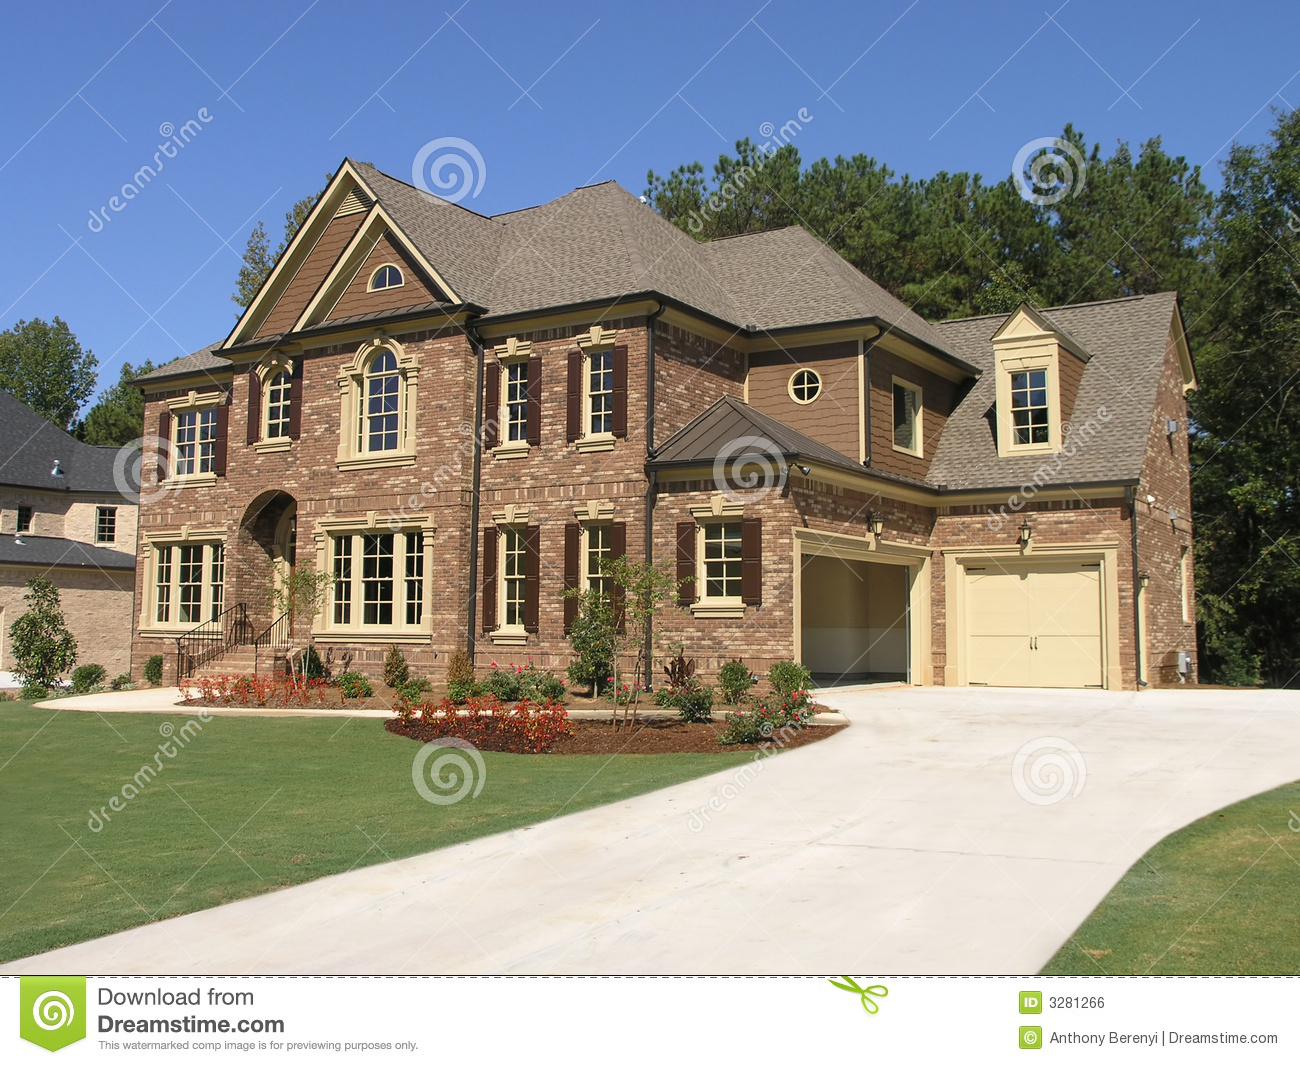 Luxury mcmansion 3 royalty free stock image image 3281266 for Jerkinhead roof construction